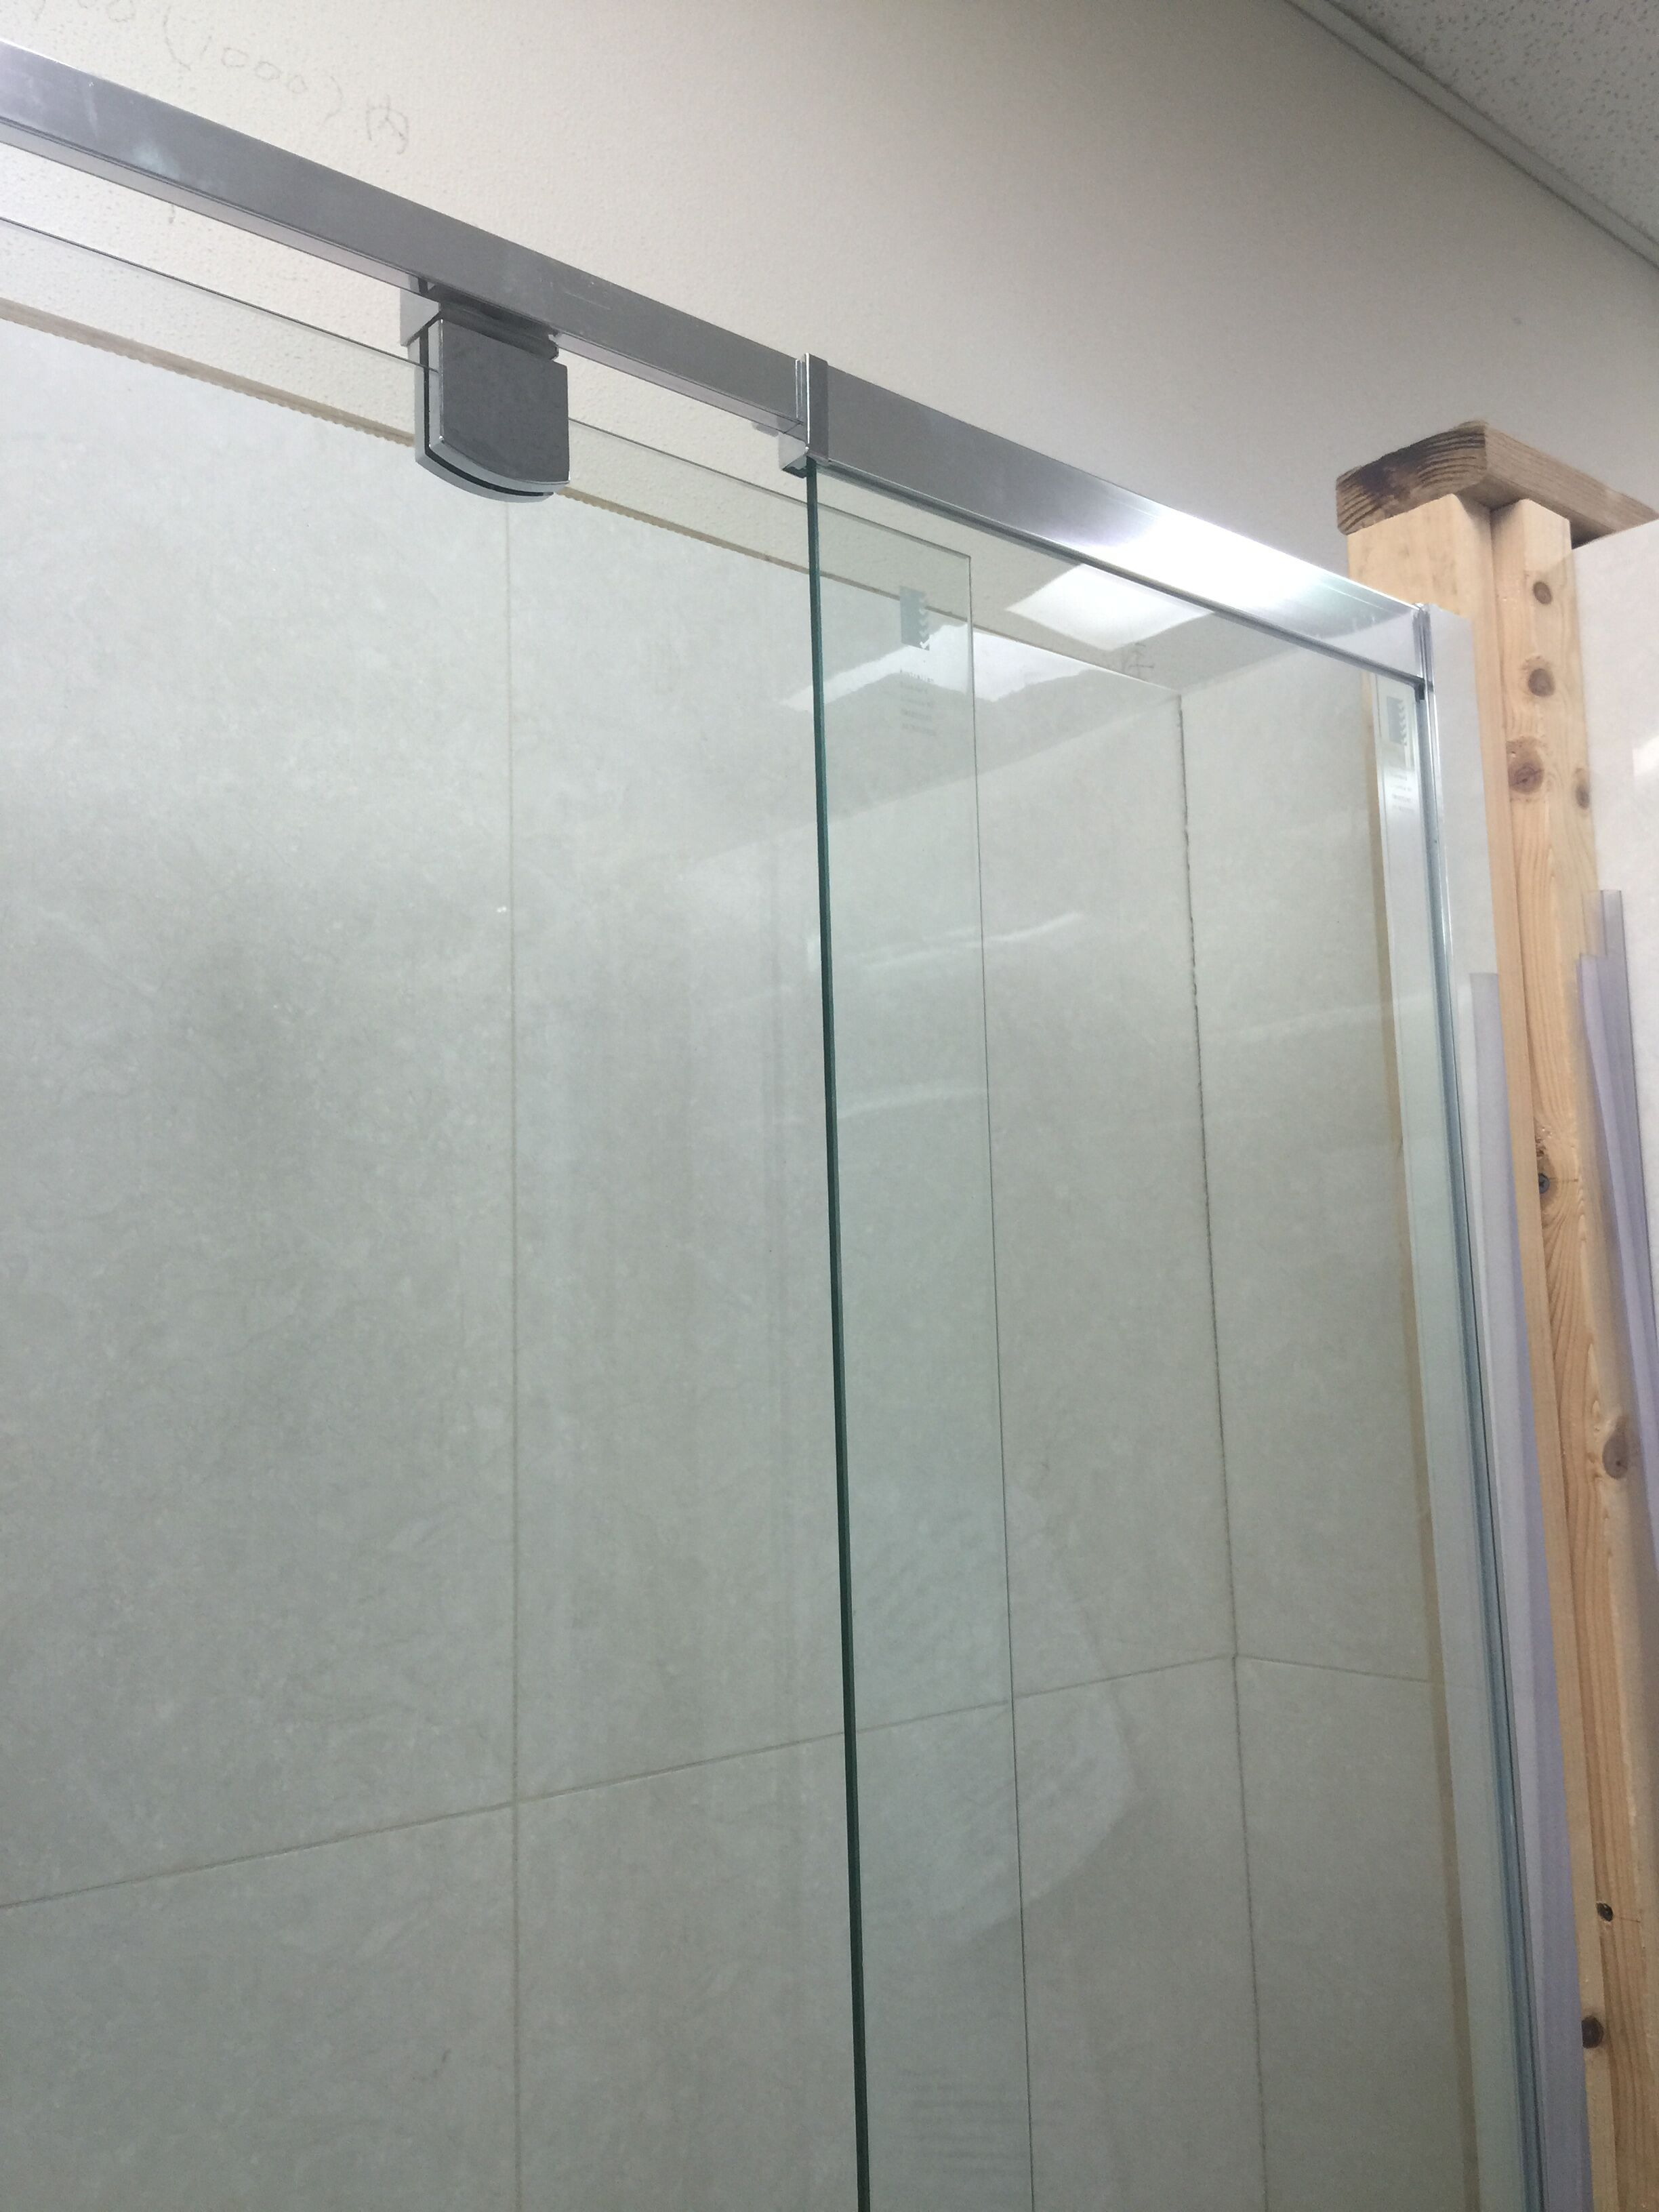 Bathroom Fittings Melbourne - 1500x6mm wall to wall shower screen